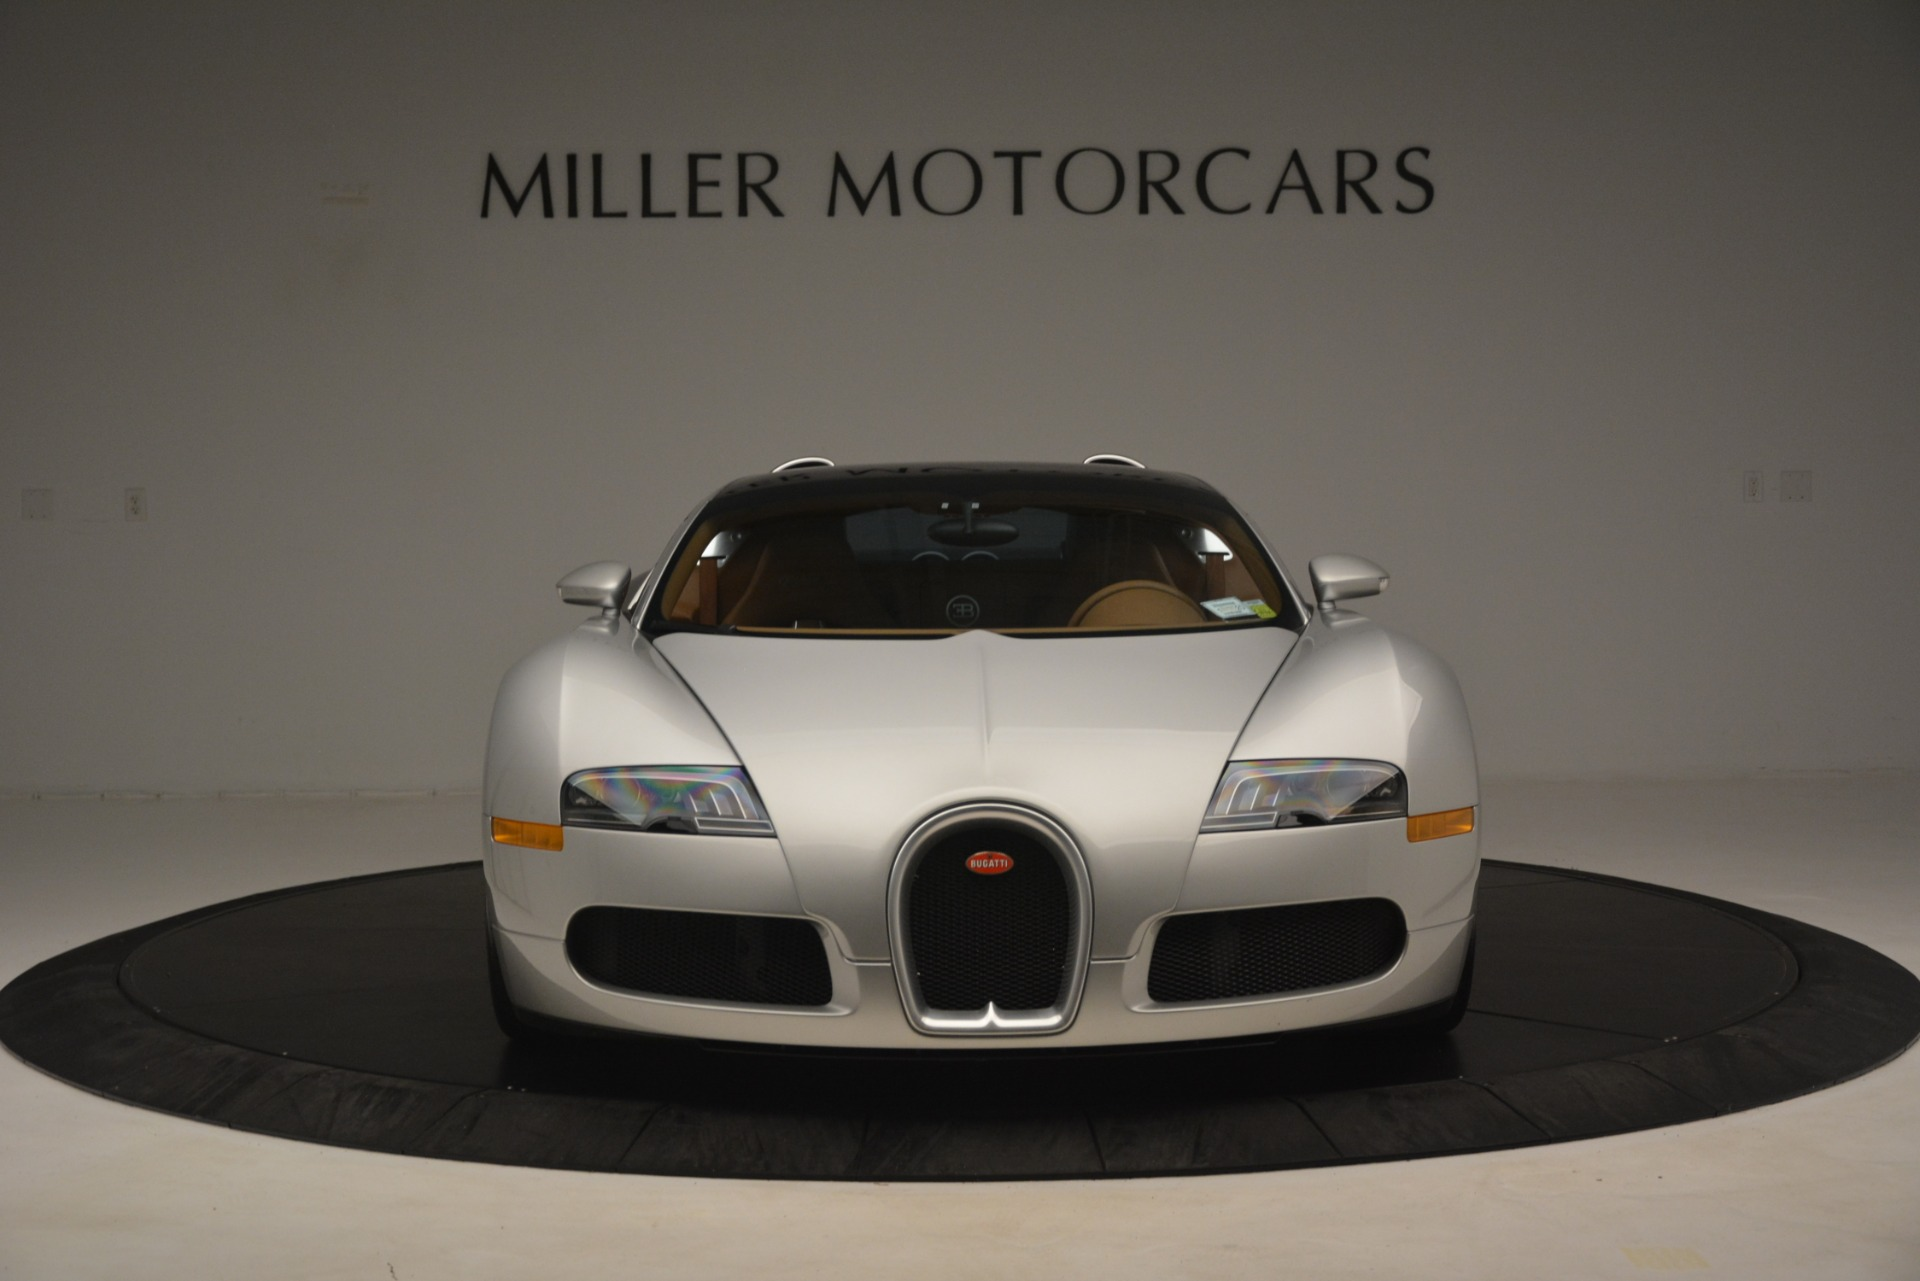 Used 2010 Bugatti Veyron 16.4 Grand Sport For Sale In Westport, CT 3159_p22